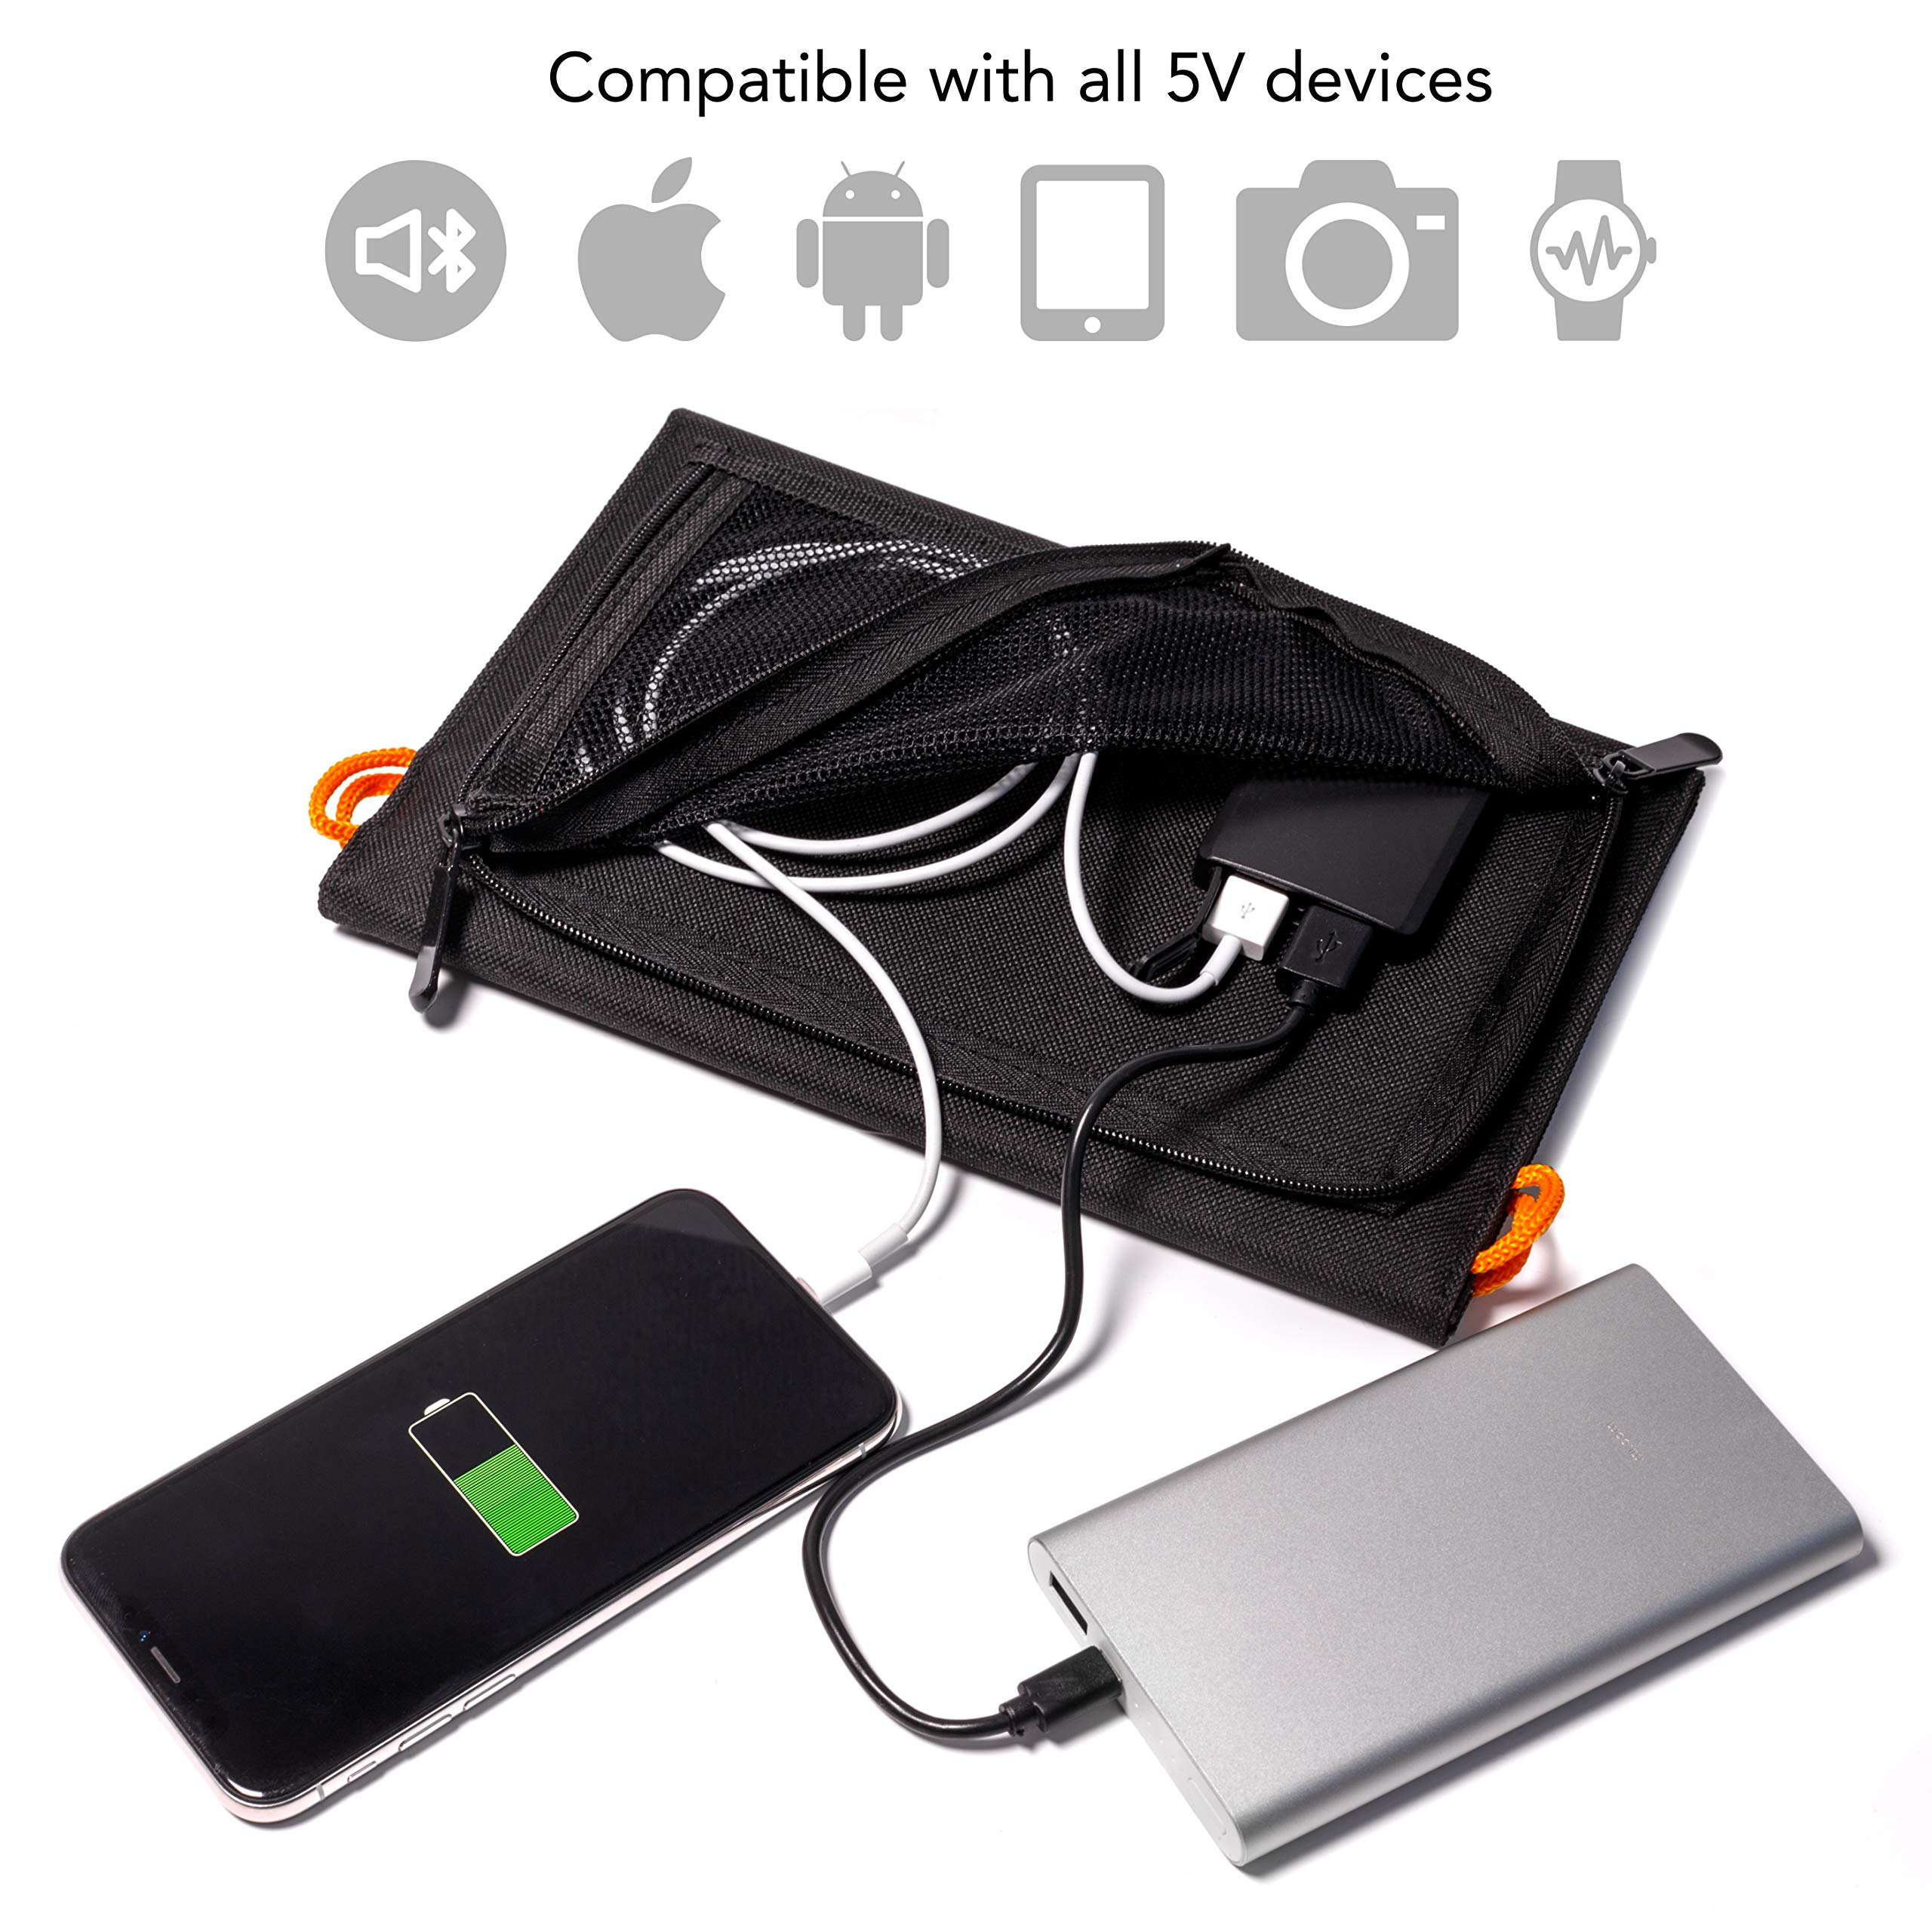 Portable Solar Charger 10W - Dual USB Solar Panel Foldable – Best Power for, iPhone, X, 8, 7, 6s, iPad, Cell Phone Android & Electronic Devices - Waterproof Sun Phone Charger for Camping & Hiking by VARAKU (Image #2)